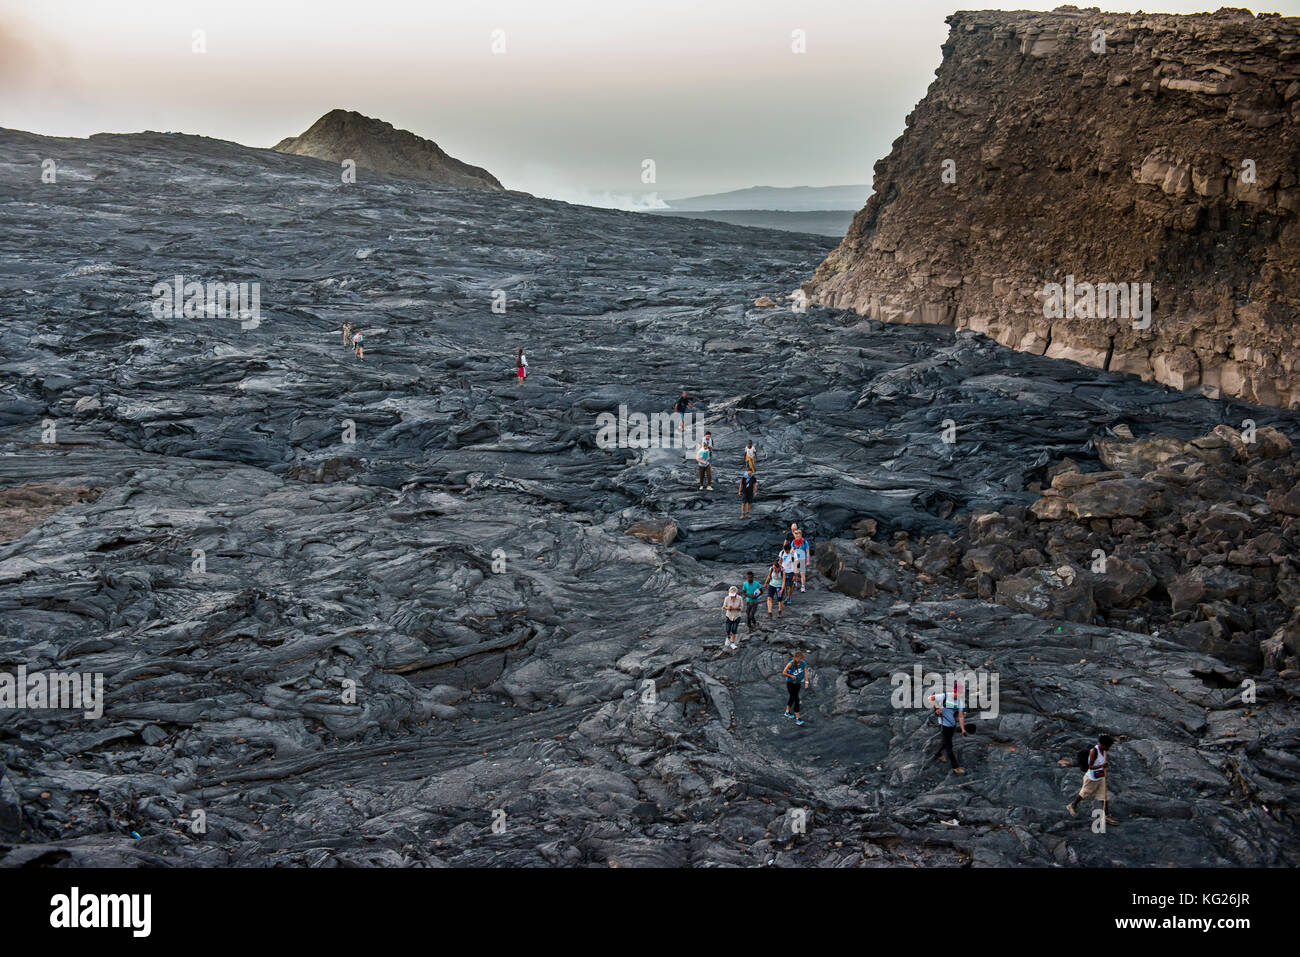 Tourists walking through lava field around the very active Erta Ale shield volcano, Danakil depression, Ethiopia, - Stock Image